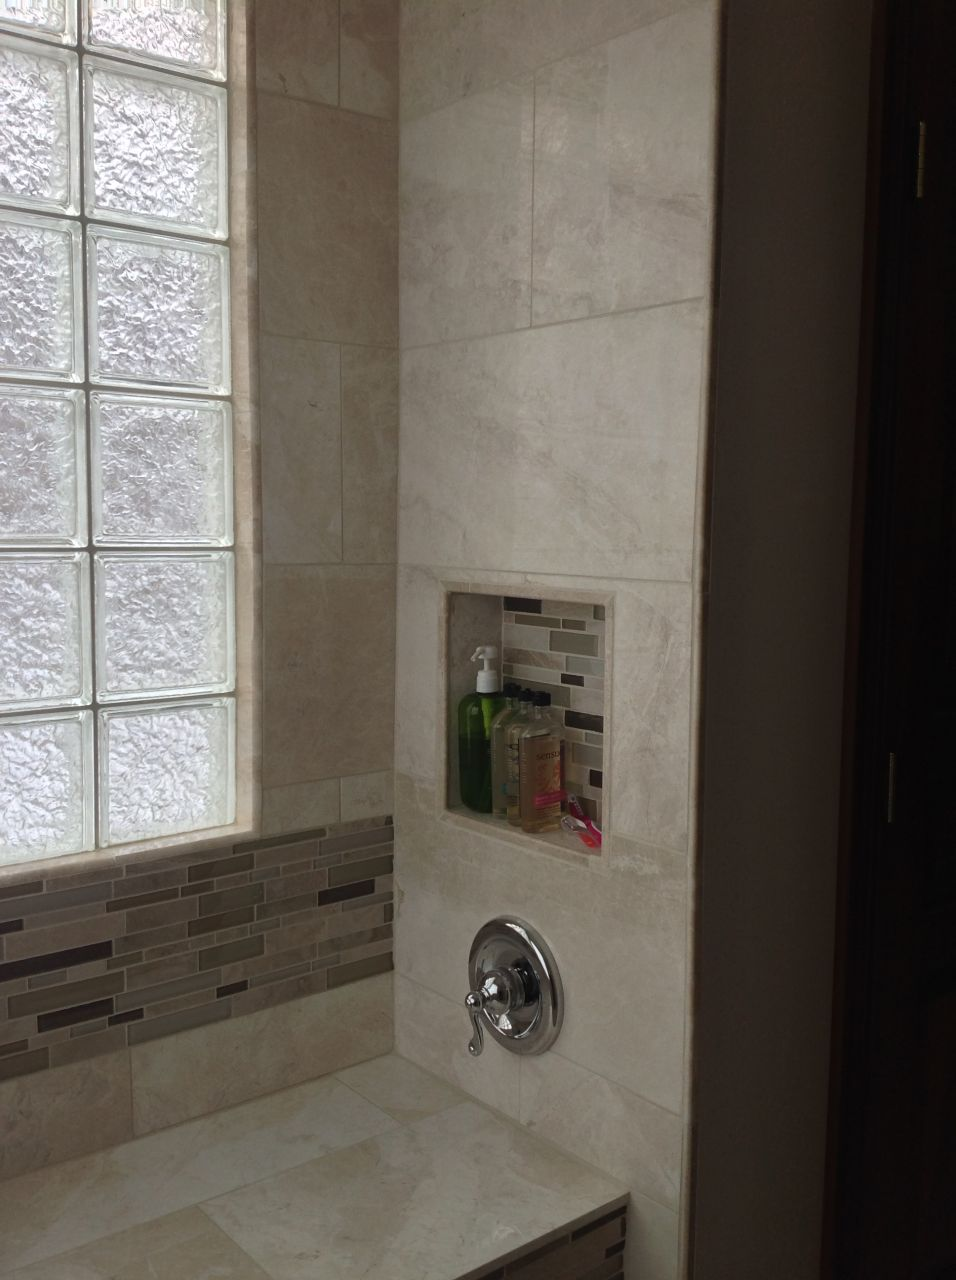 Exceptionnel Glass Block Shower Window With Tile On The Inside